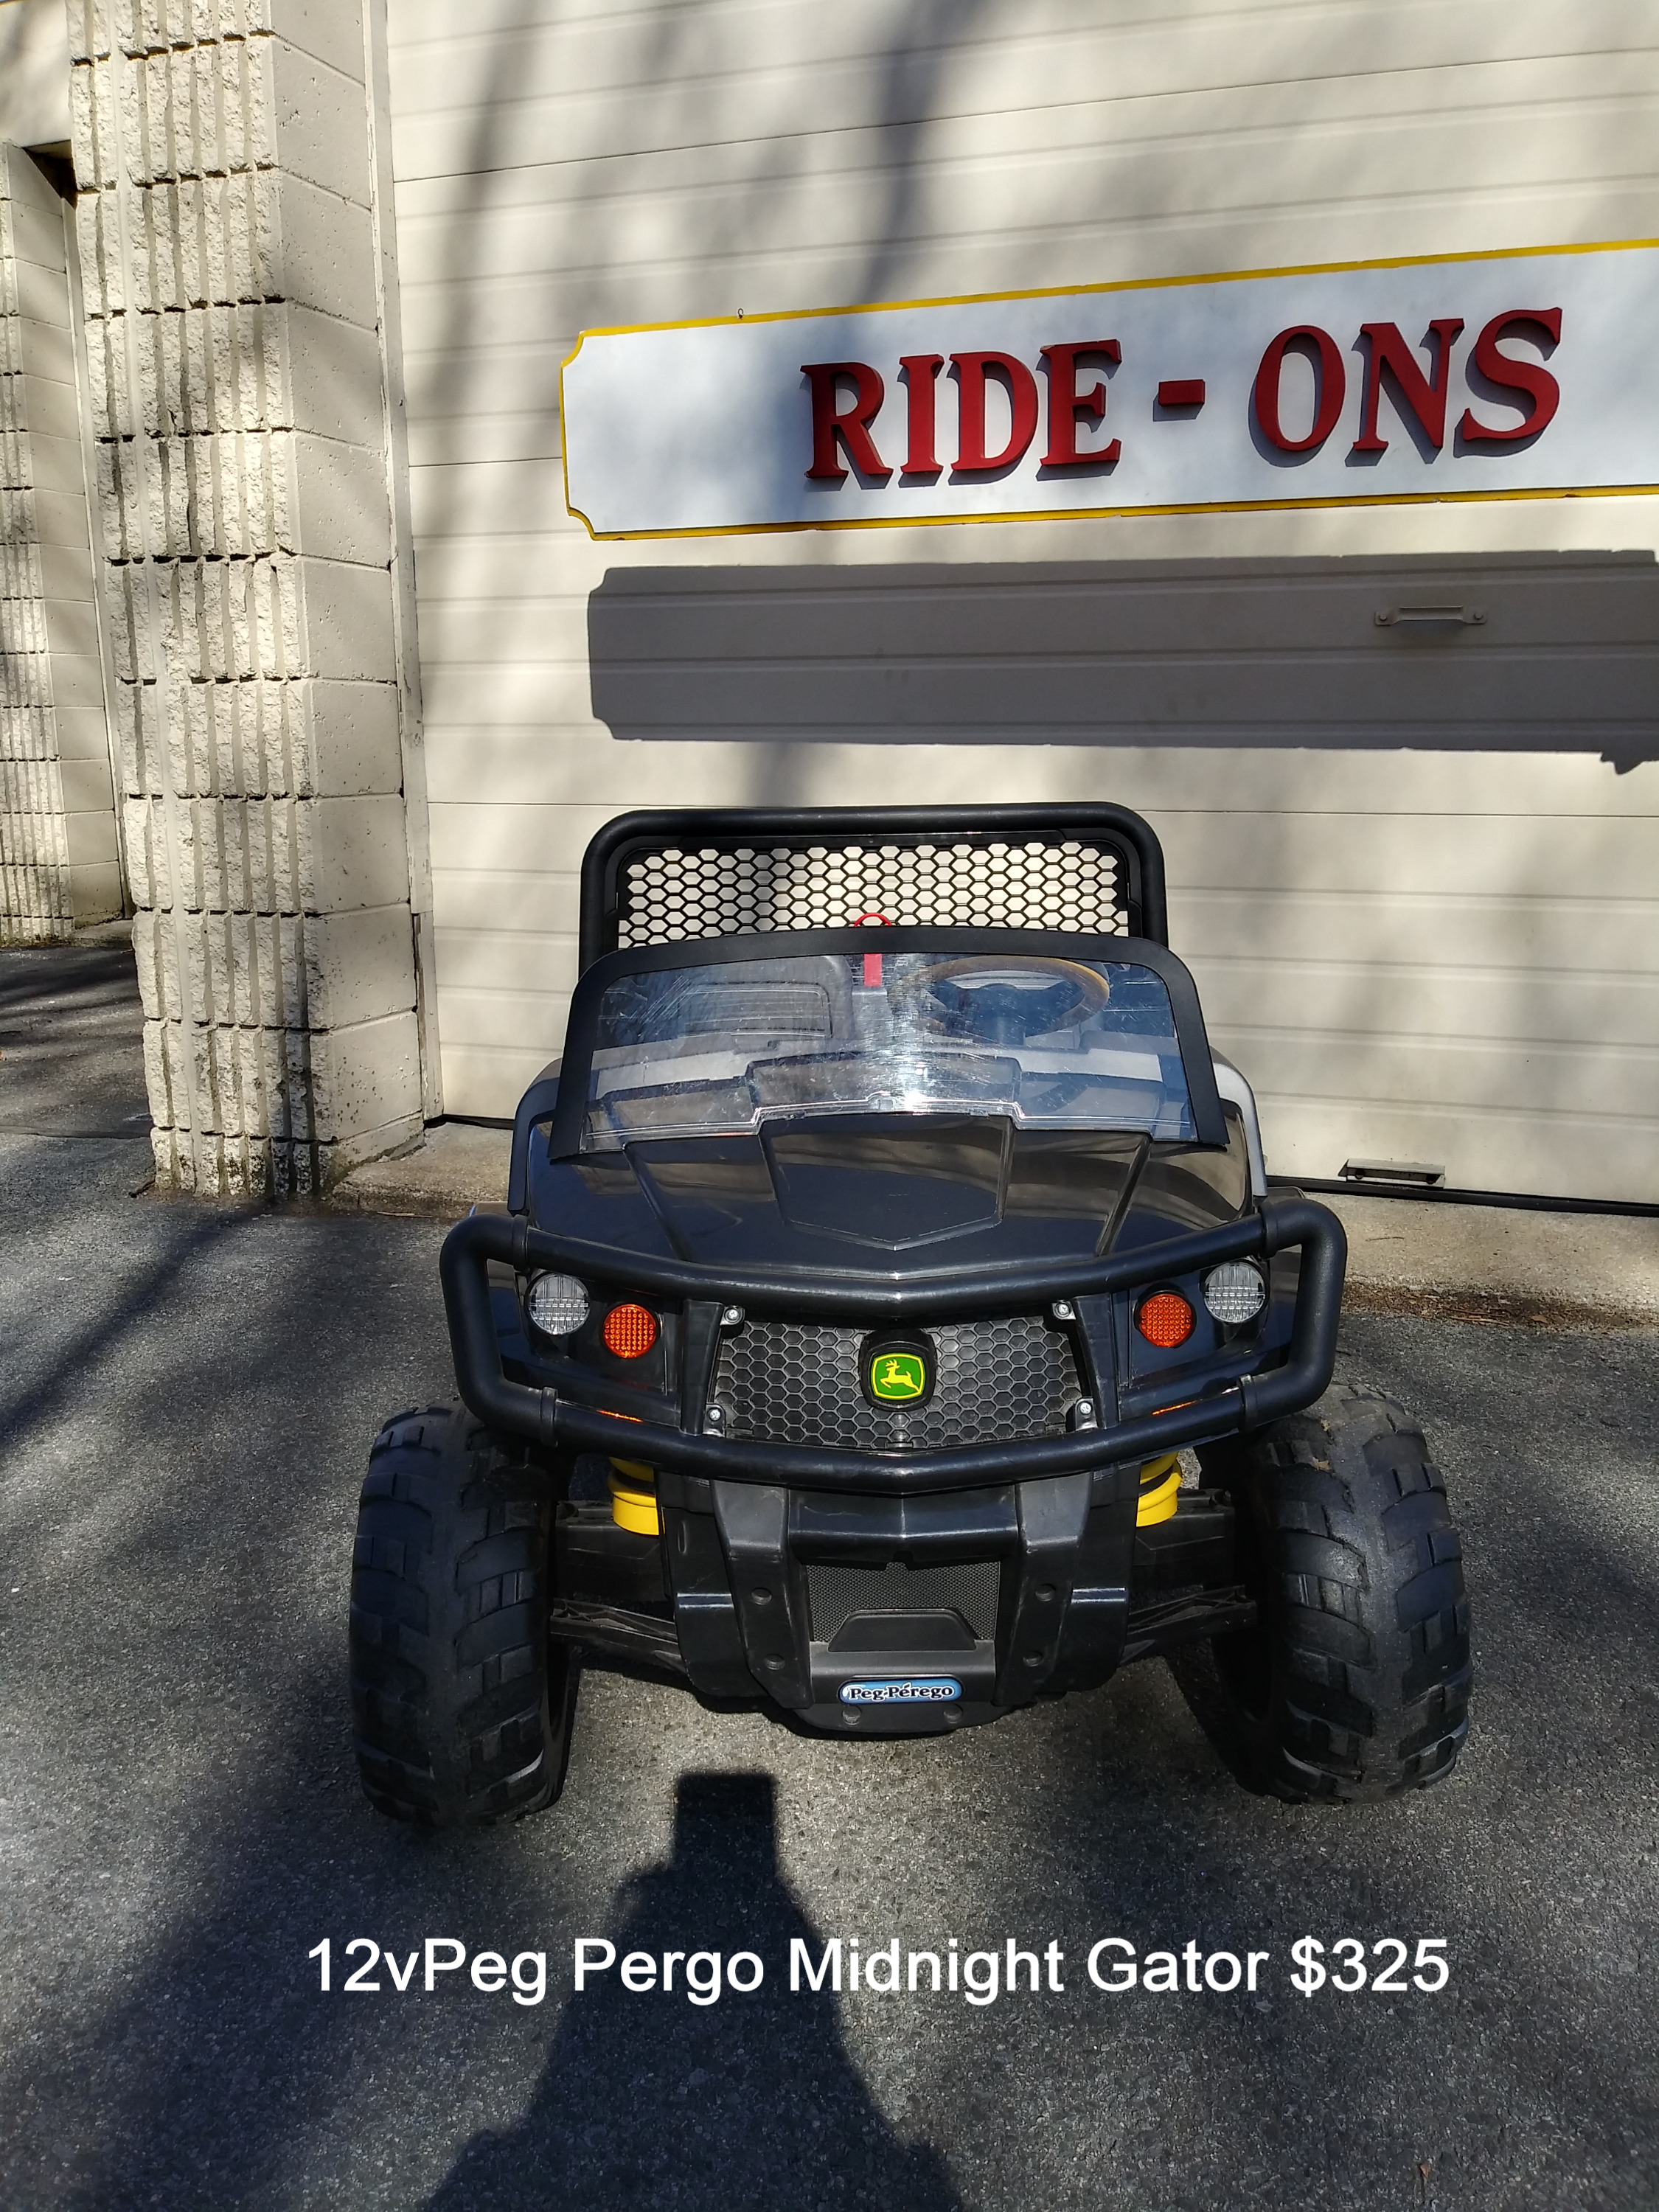 12v Peg Perego Midnight Gator $325